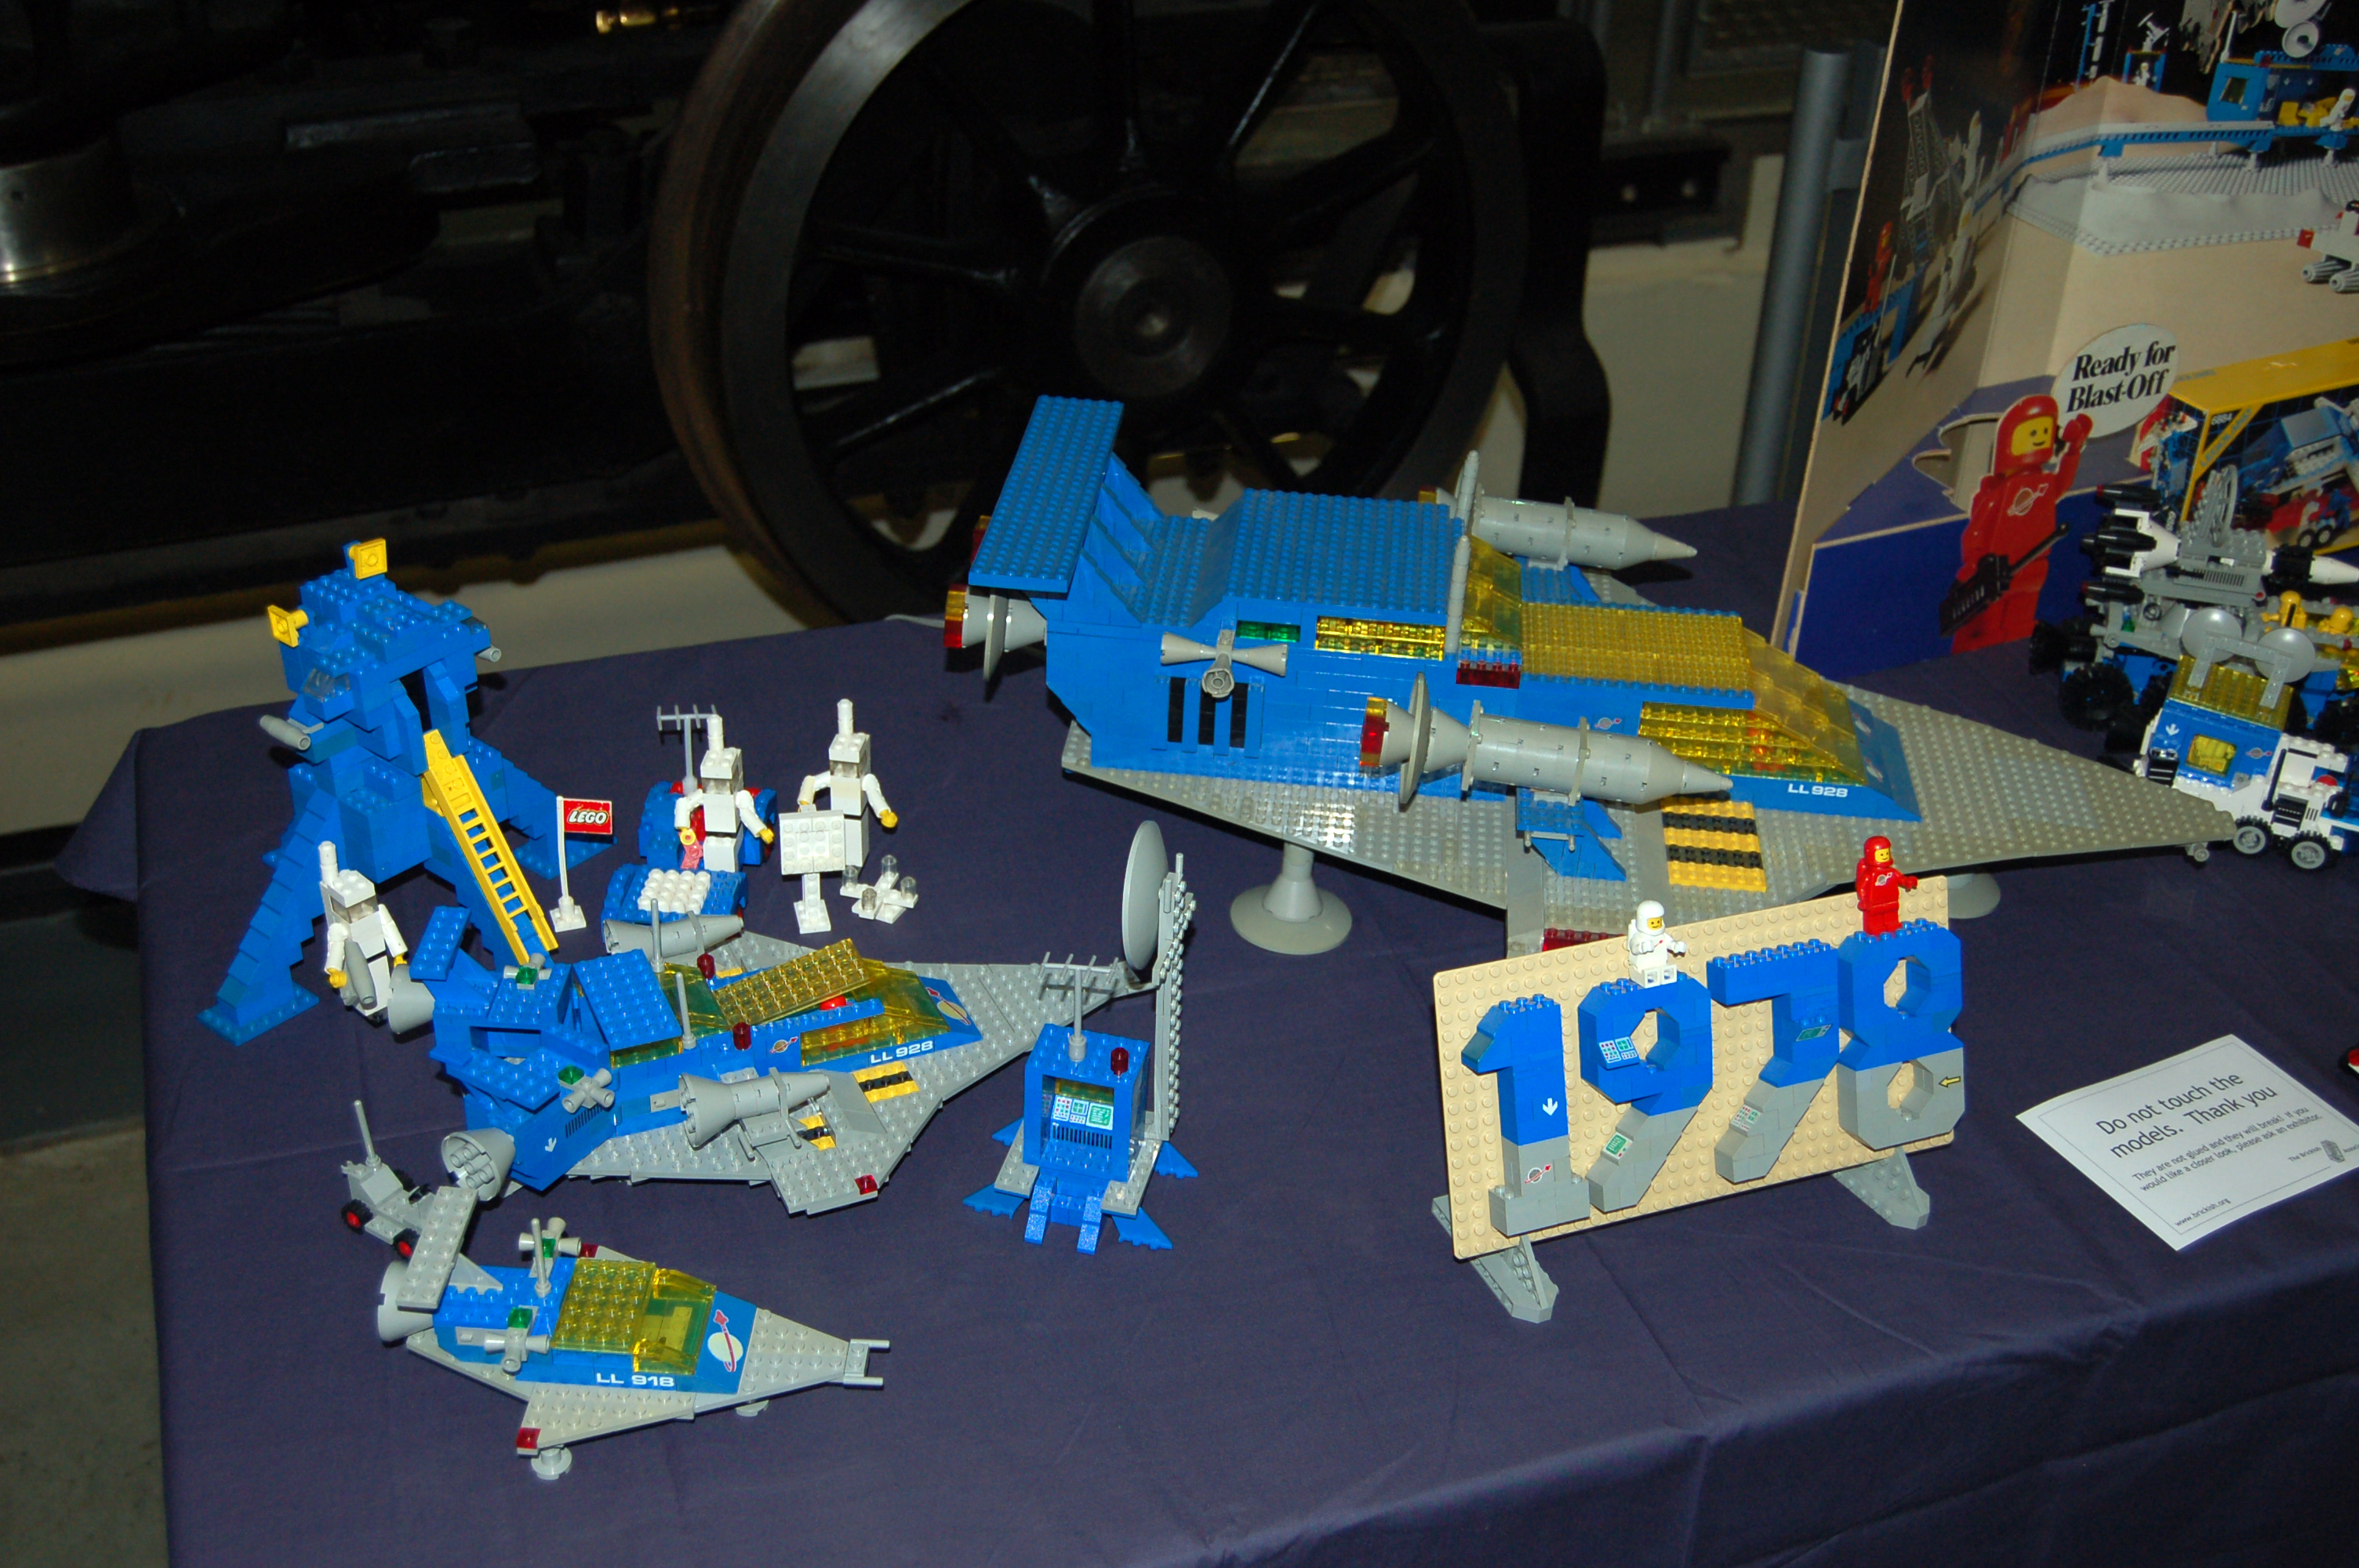 Description lego moon landing 565 1975 and lego space 1978